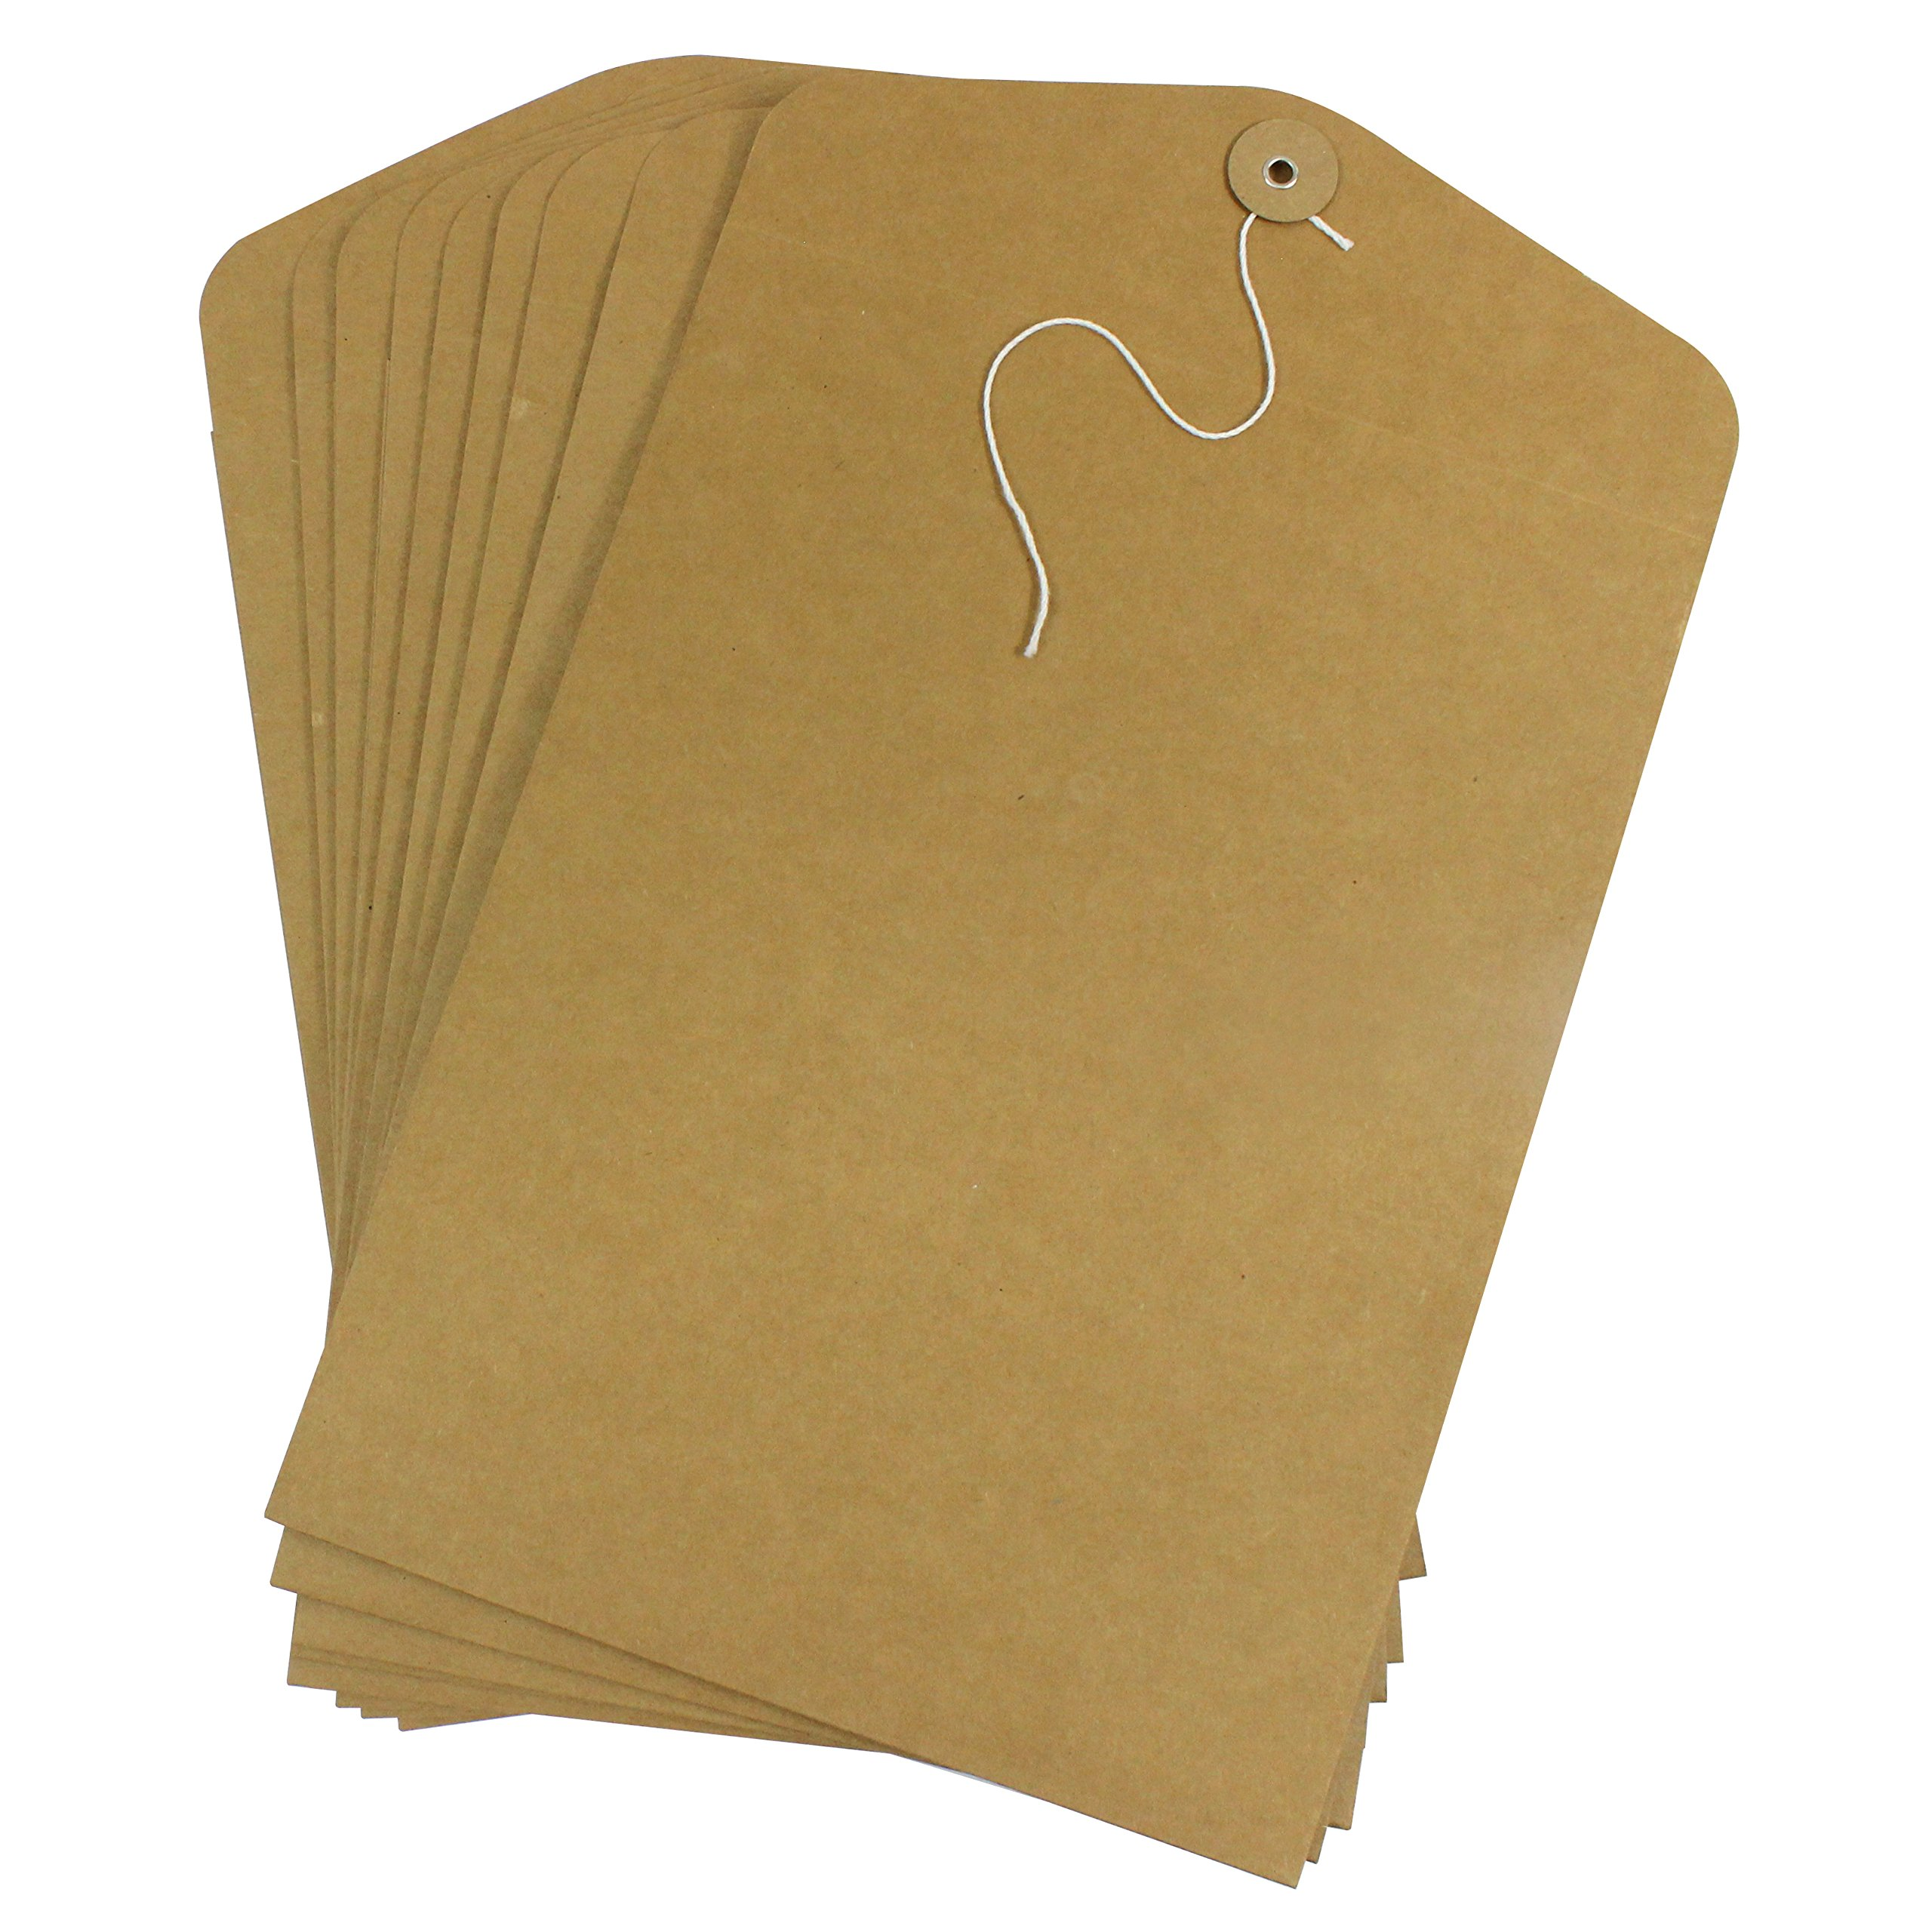 Zoohot 10 Pcs A4 Size Envelopes with String - Kraft Paper File Folders for Offices School Supplies